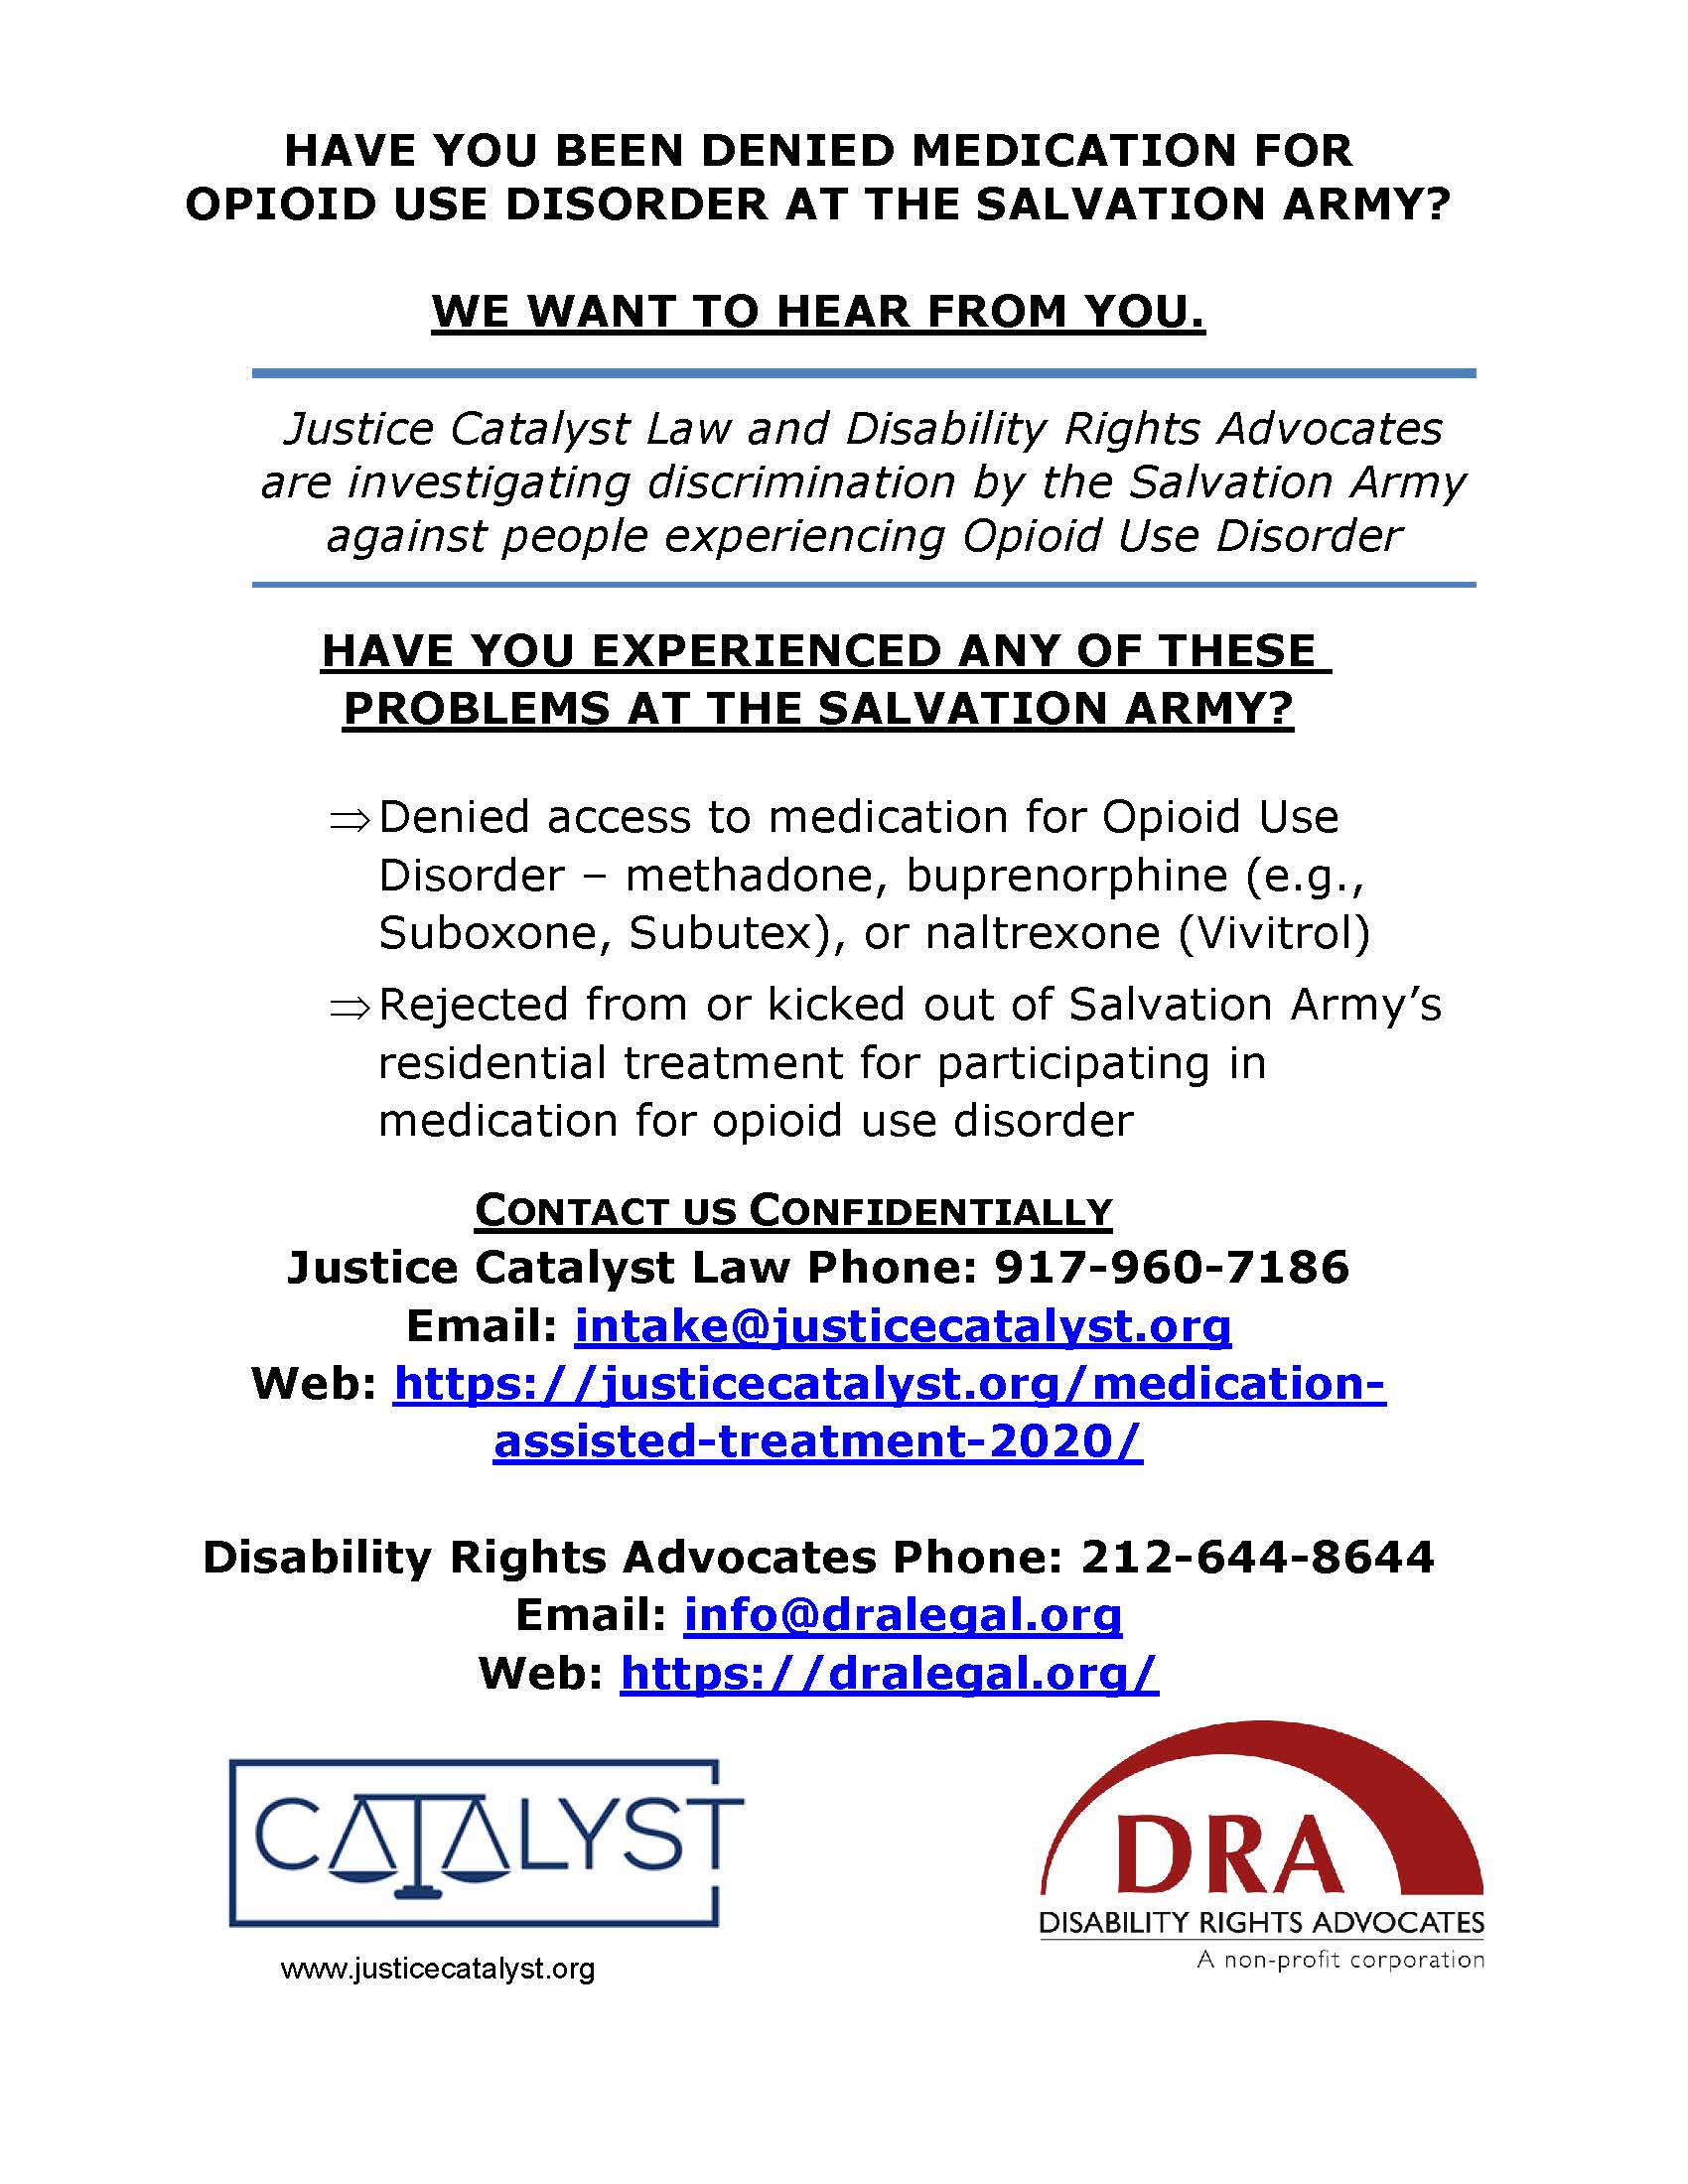 """""""Have you been denied medication for opioid use disorder at the Salvation Army? We want to hear from you. Justice Catalyst Law and Disability Rights Advocates are investigating discrimination by the Salvation Army against people experiencing Opioid Use DisorderHave you experienced any of these problems at the Salvation Army? -Denied access to medication for Opioid Use Disorder – methadone, buprenorphine (e.g., Suboxone, Subutex), or naltrexone (Vivitrol), -Rejected from or kicked out of Salvation Army's residential treatment for participating in medication for opioid use disorder. Contacy us confidentially: Justice Catalyst Law Phone: 917-960-7186, Email: intake@justicecatalyst.org, Web: https://justicecatalyst.org/medication-assisted-treatment-2020/. Disability Rights Advocates Phone: 212-644-8644, Email: info@dralegal.org, Web: https://dralegal.org/"""" Justice Catalyst logo and DRA logo"""